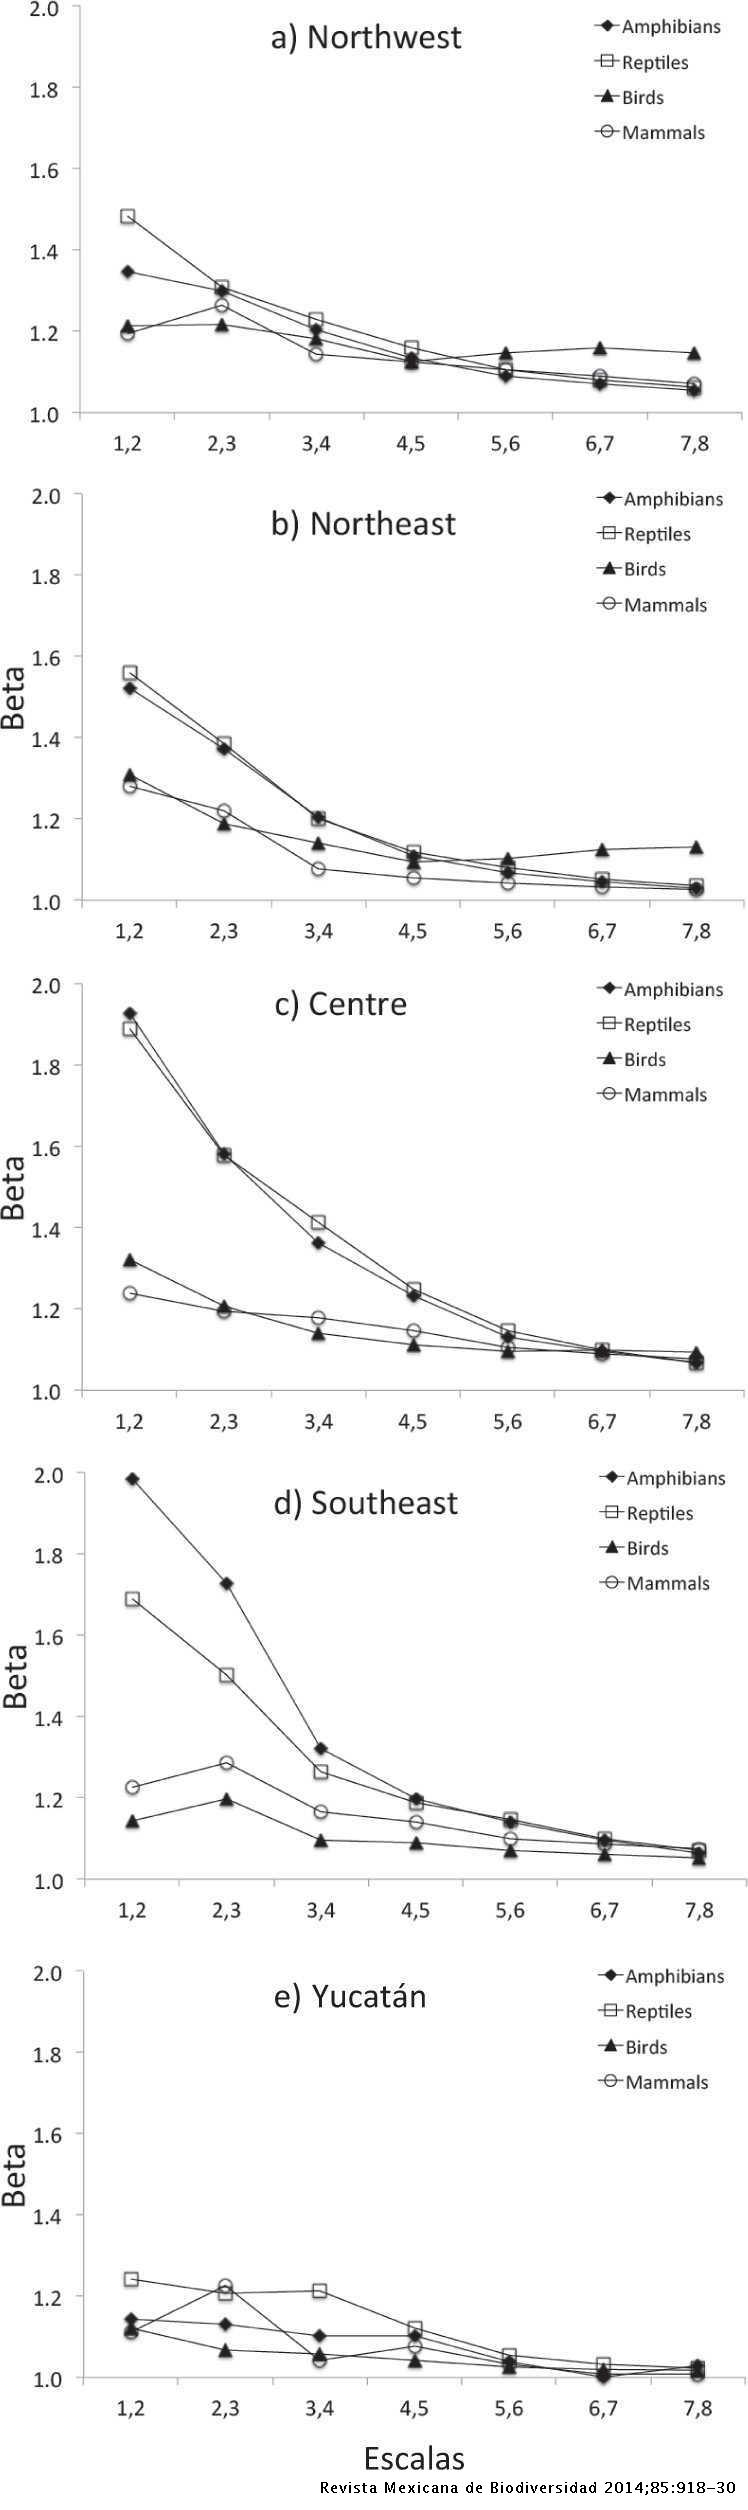 Spatial scale and β-diversity of terrestrial vertebrates in Mexico